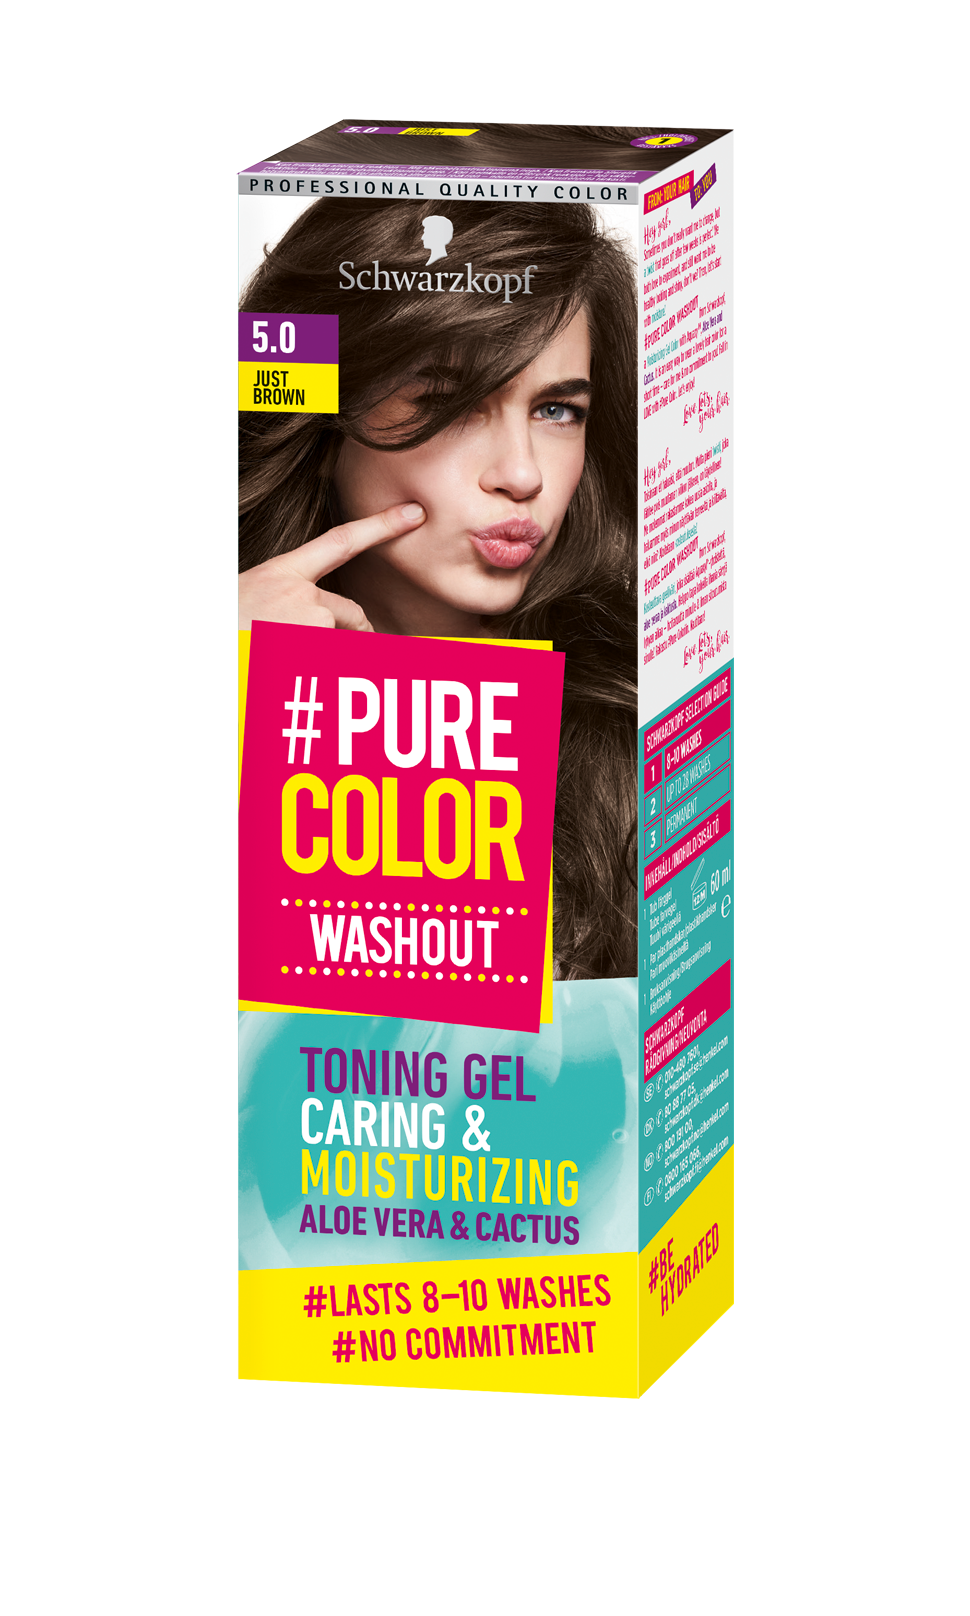 Pure-color-washout-5-0-just-brown